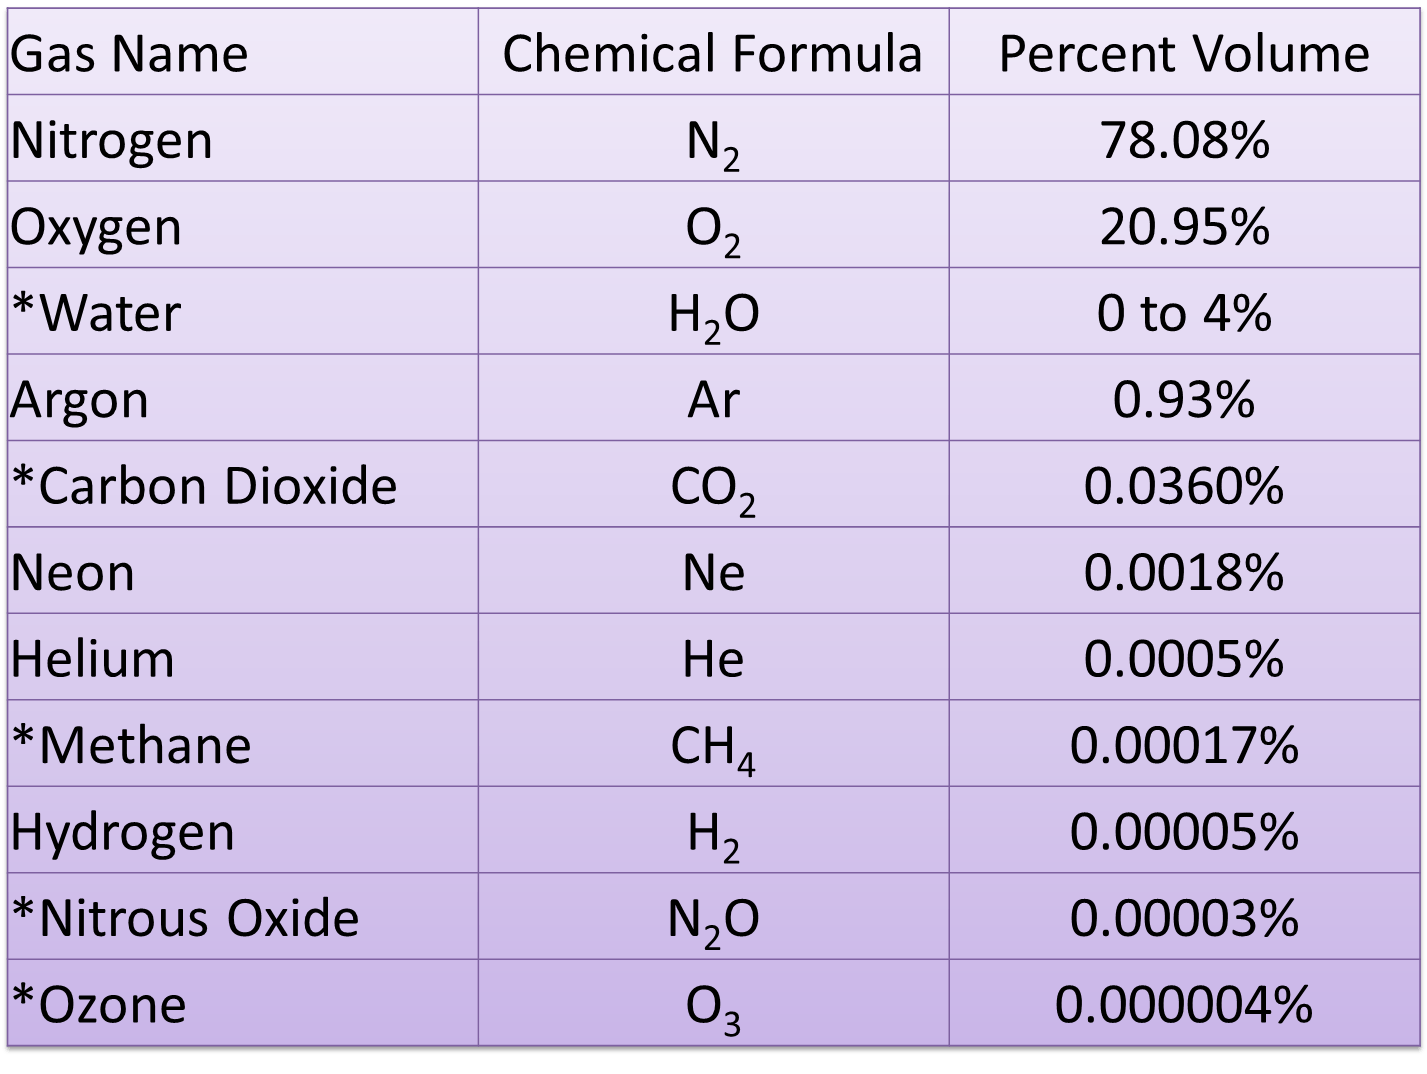 Gas Name and Chemical Formula Table